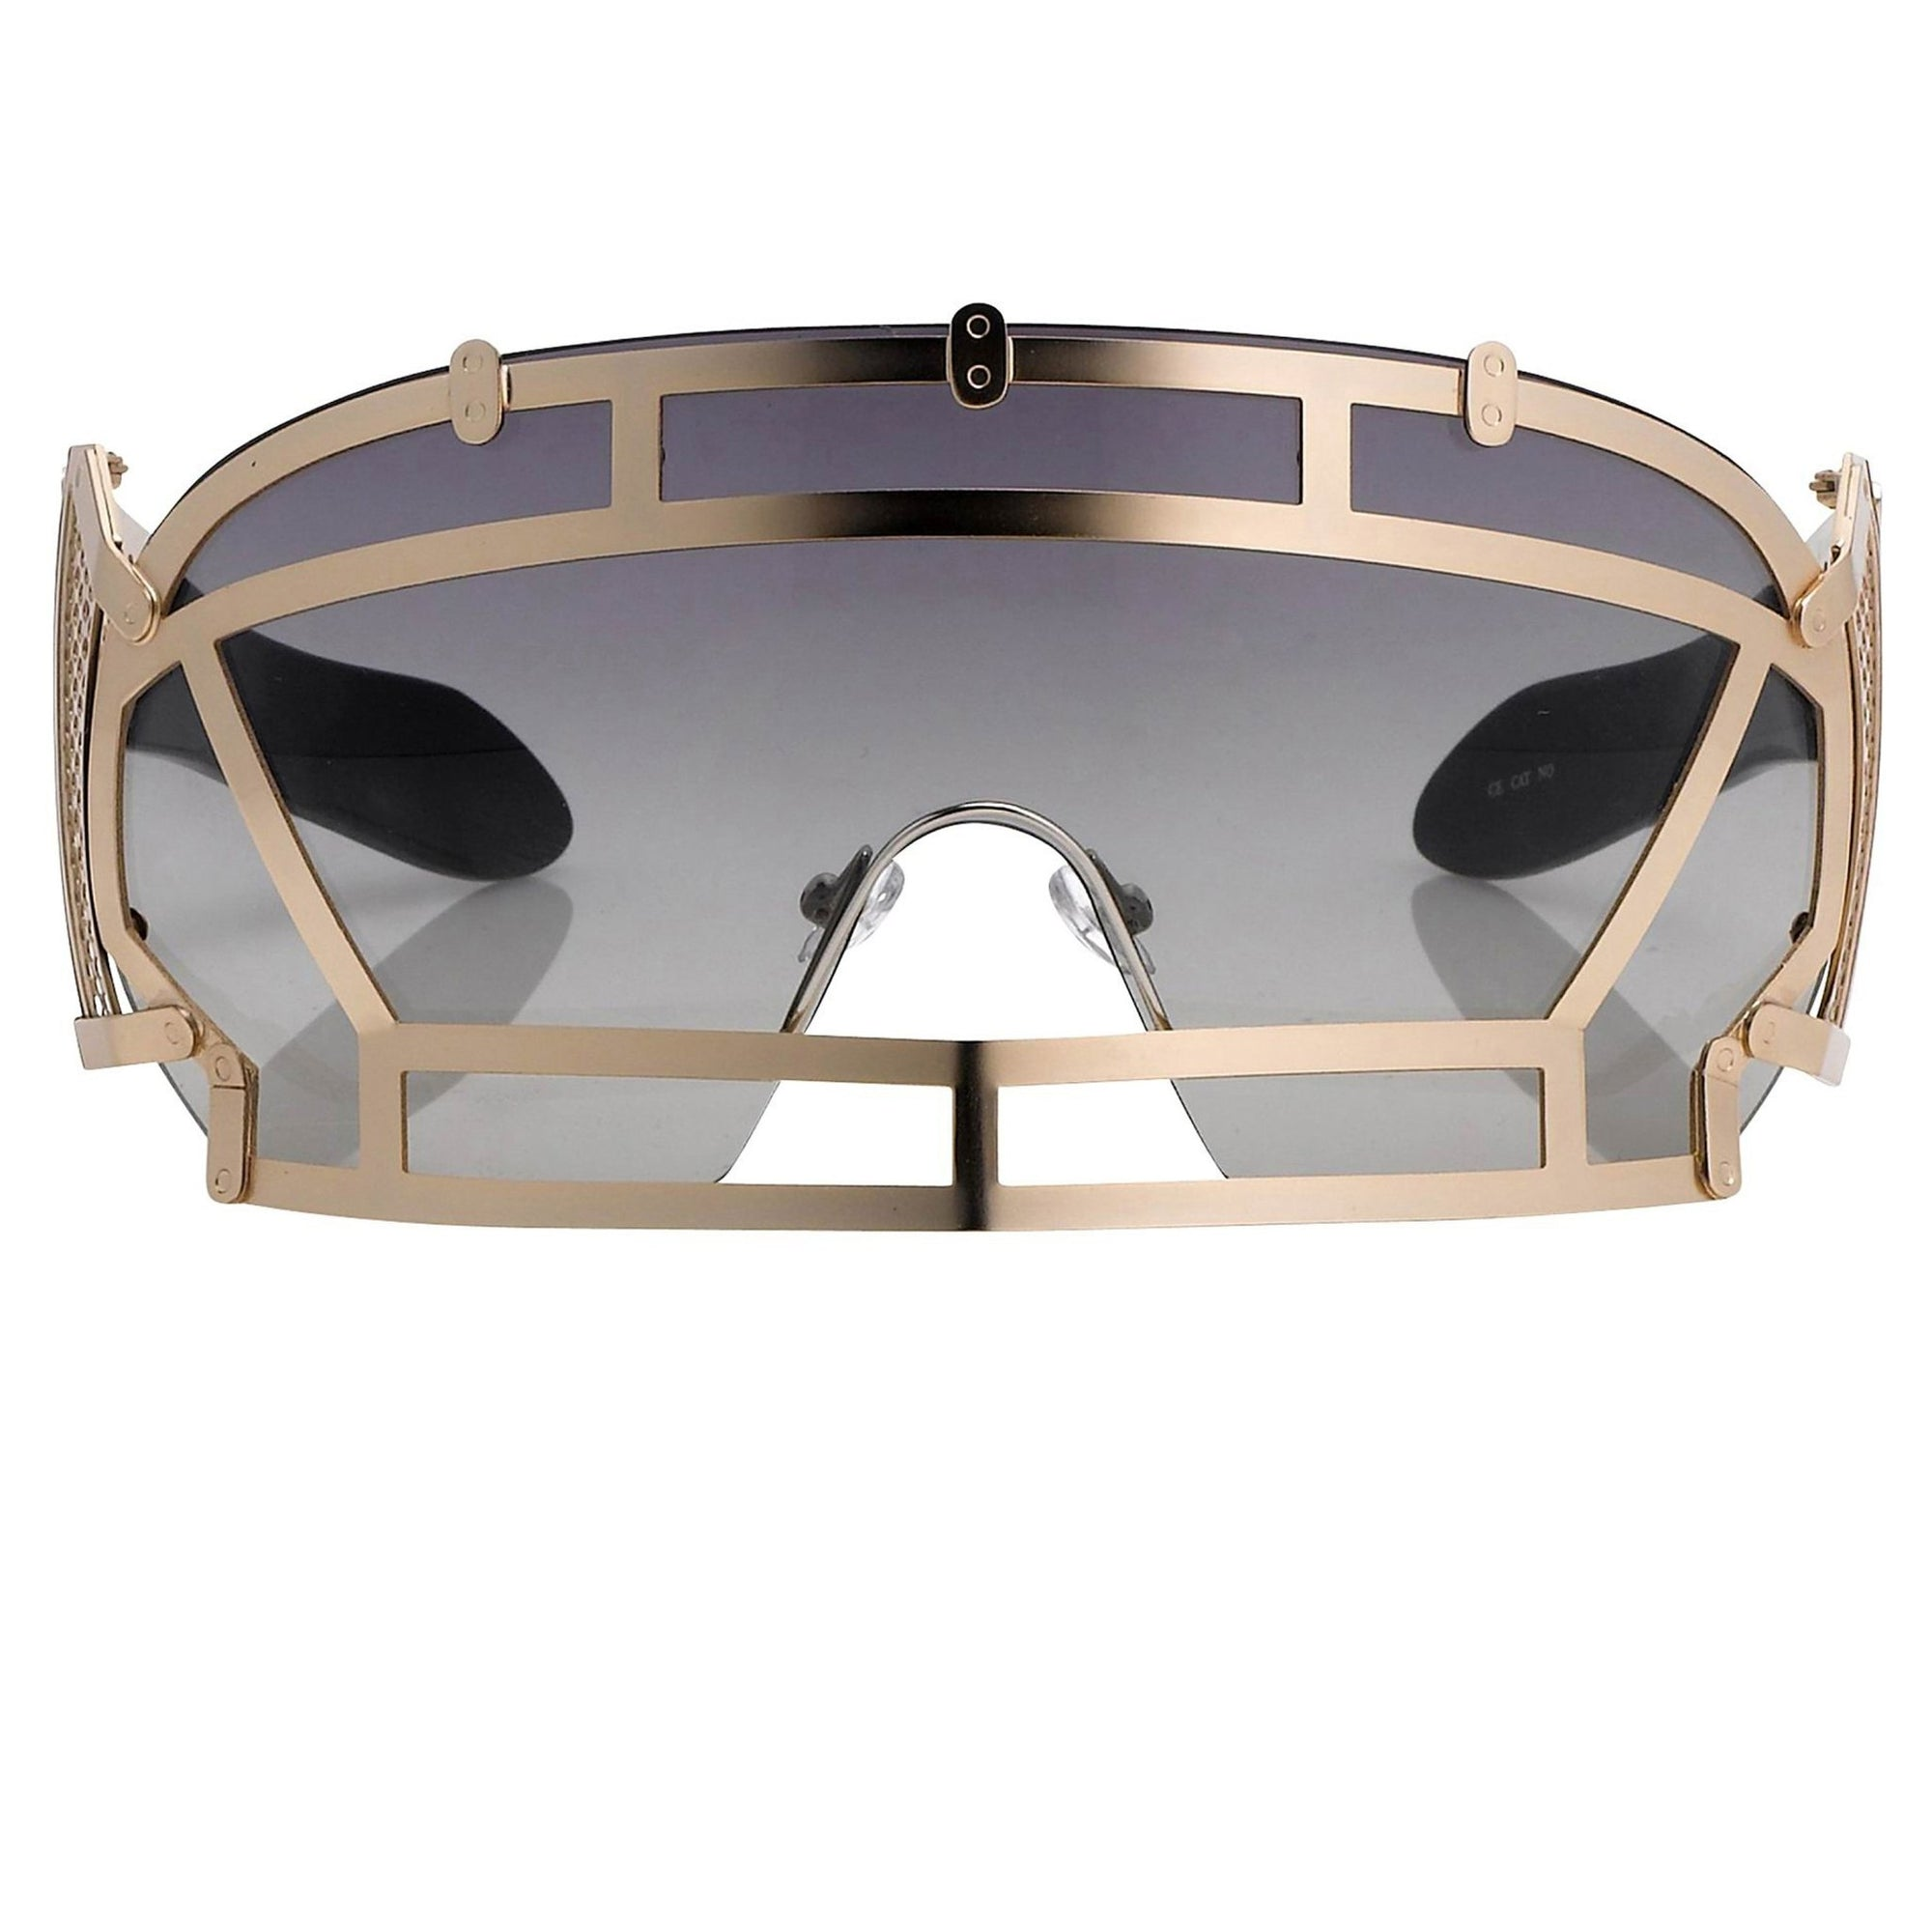 Kokon To Zai Sunglasses Football Helmet Gold With Grey Lenses KTZ1C3SUN - Watches & Crystals